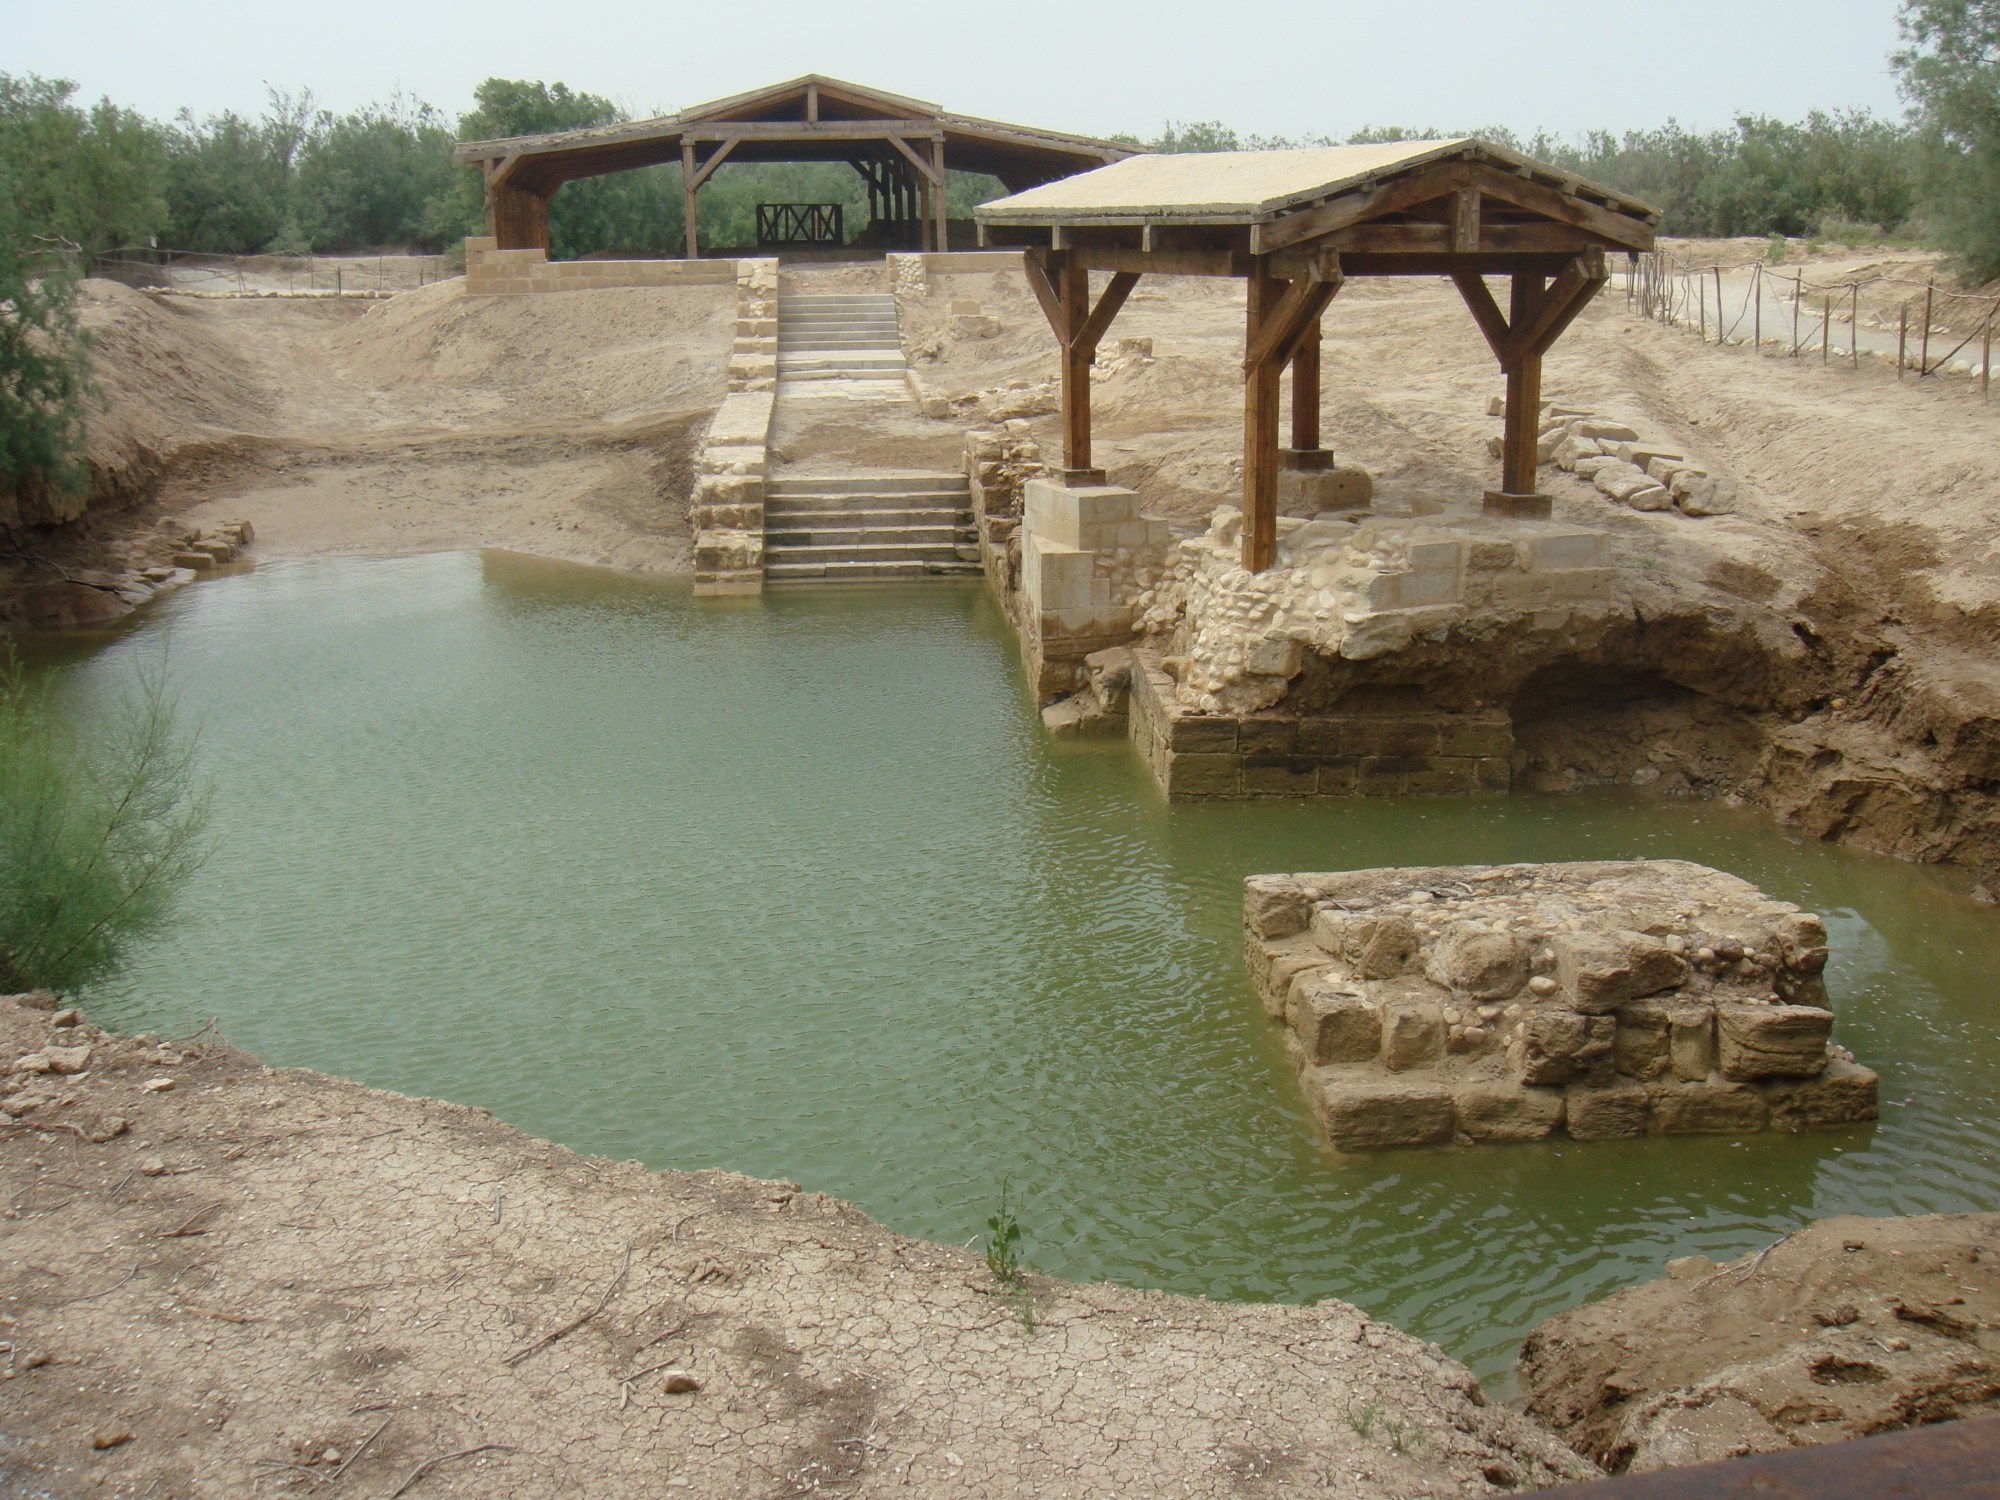 hight resolution of al maghtas ruins on the jordanian side of the jordan river are the location for the baptism of jesus and the ministry of john the baptist